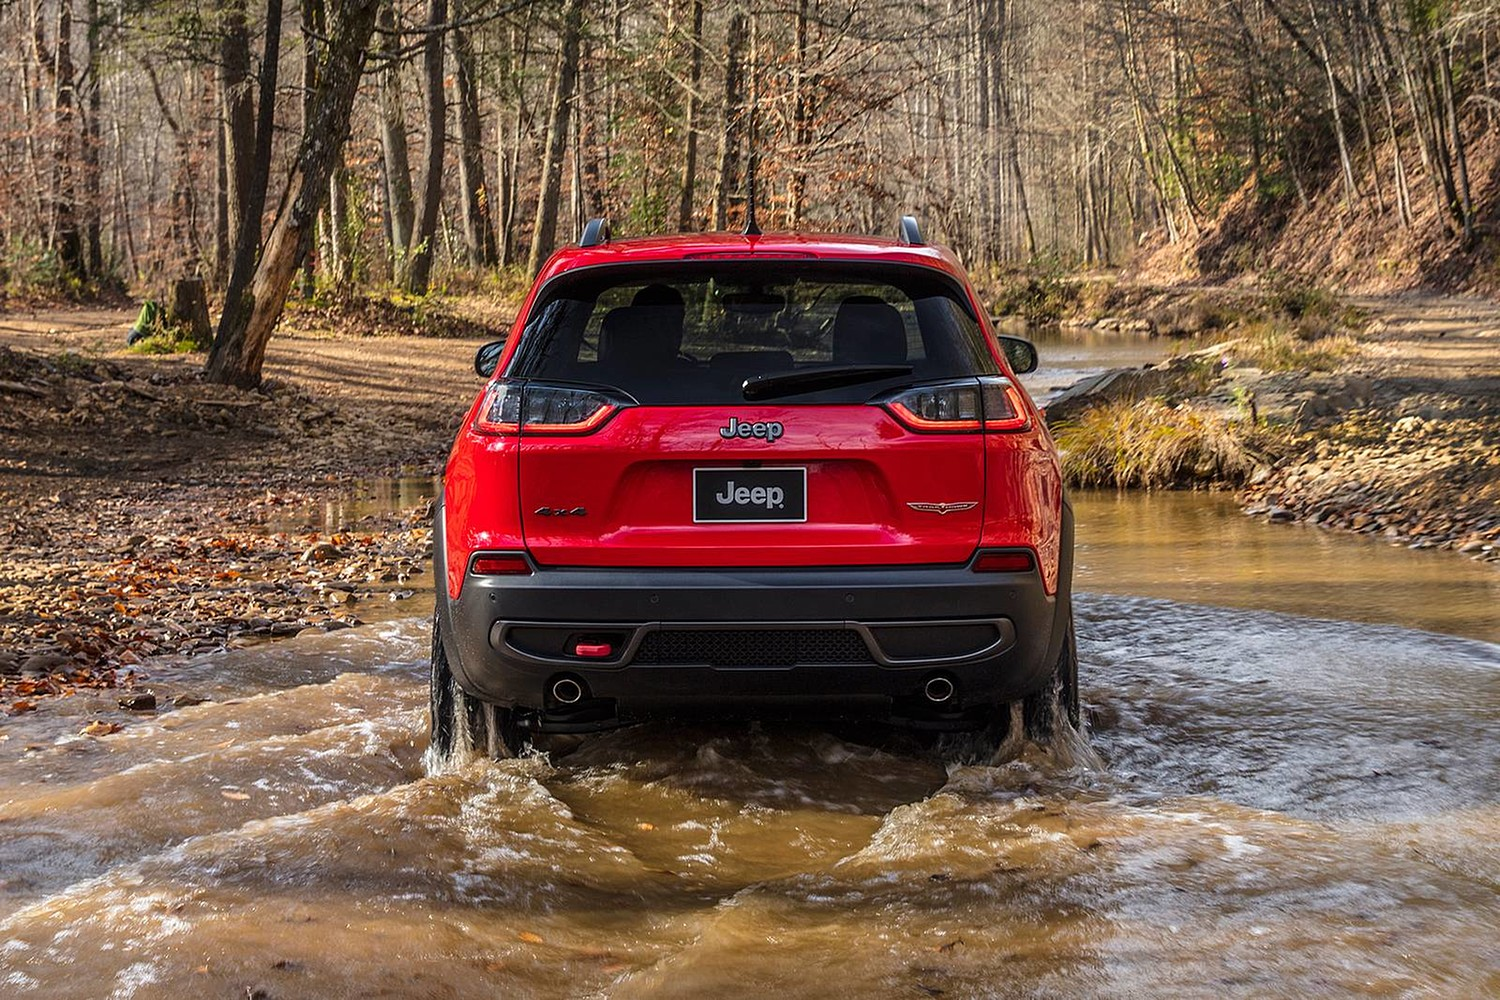 2019 Jeep Cherokee Trailhawk 4dr SUV Exterior